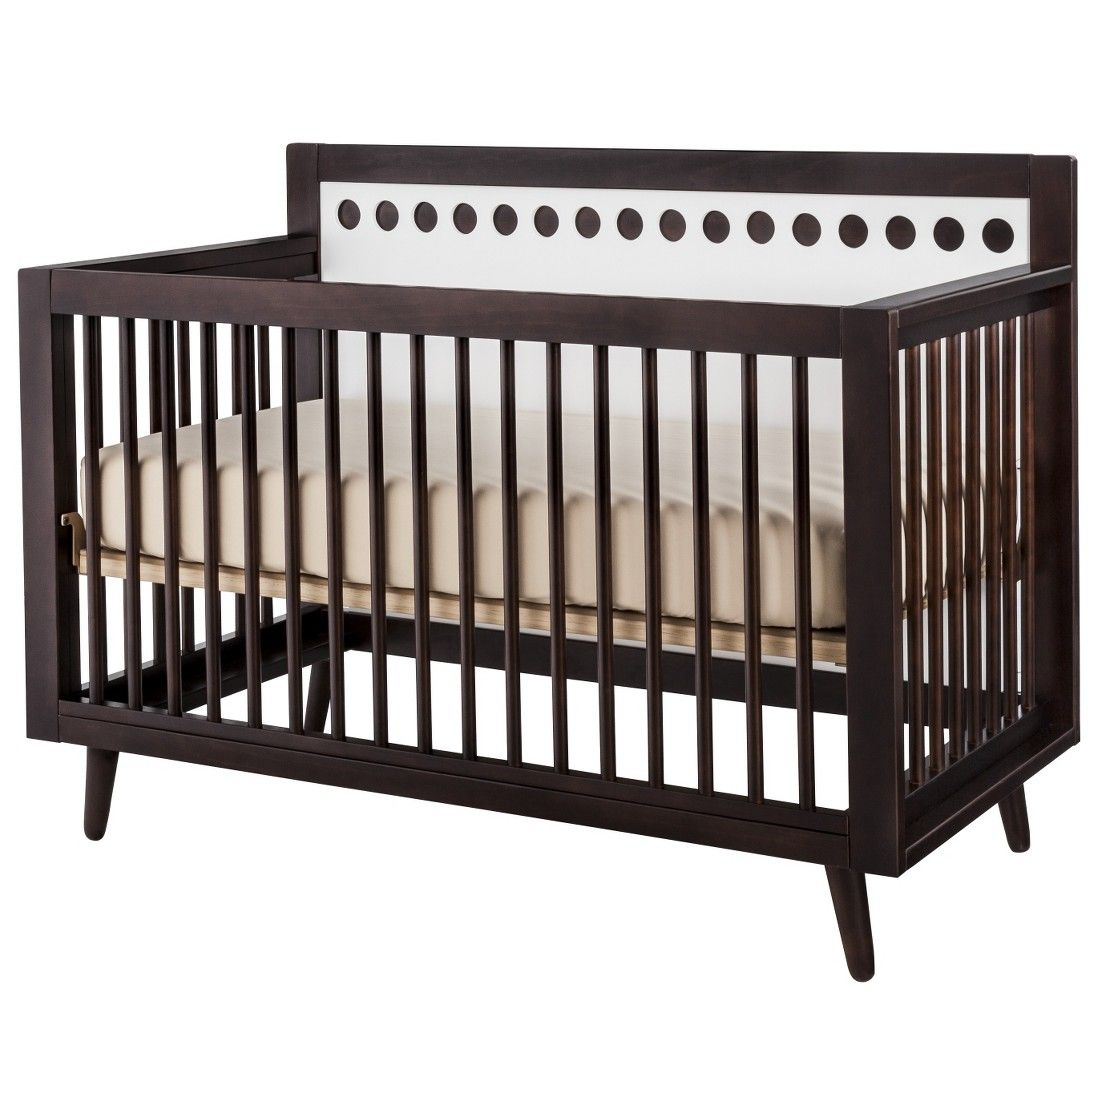 Stork Craft Bayshore 3-in-1 Convertible Crib - Espresso/White